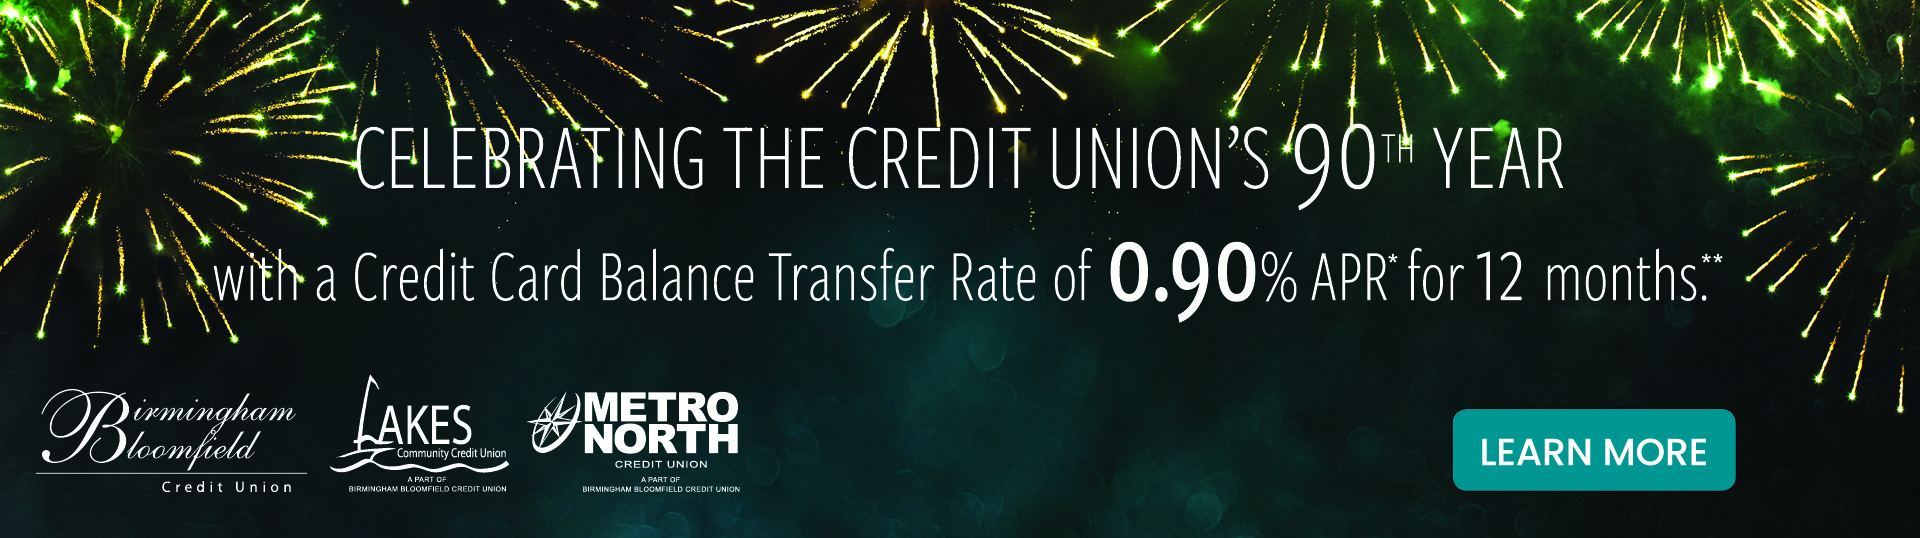 Balance Transfer Credit Card Promo